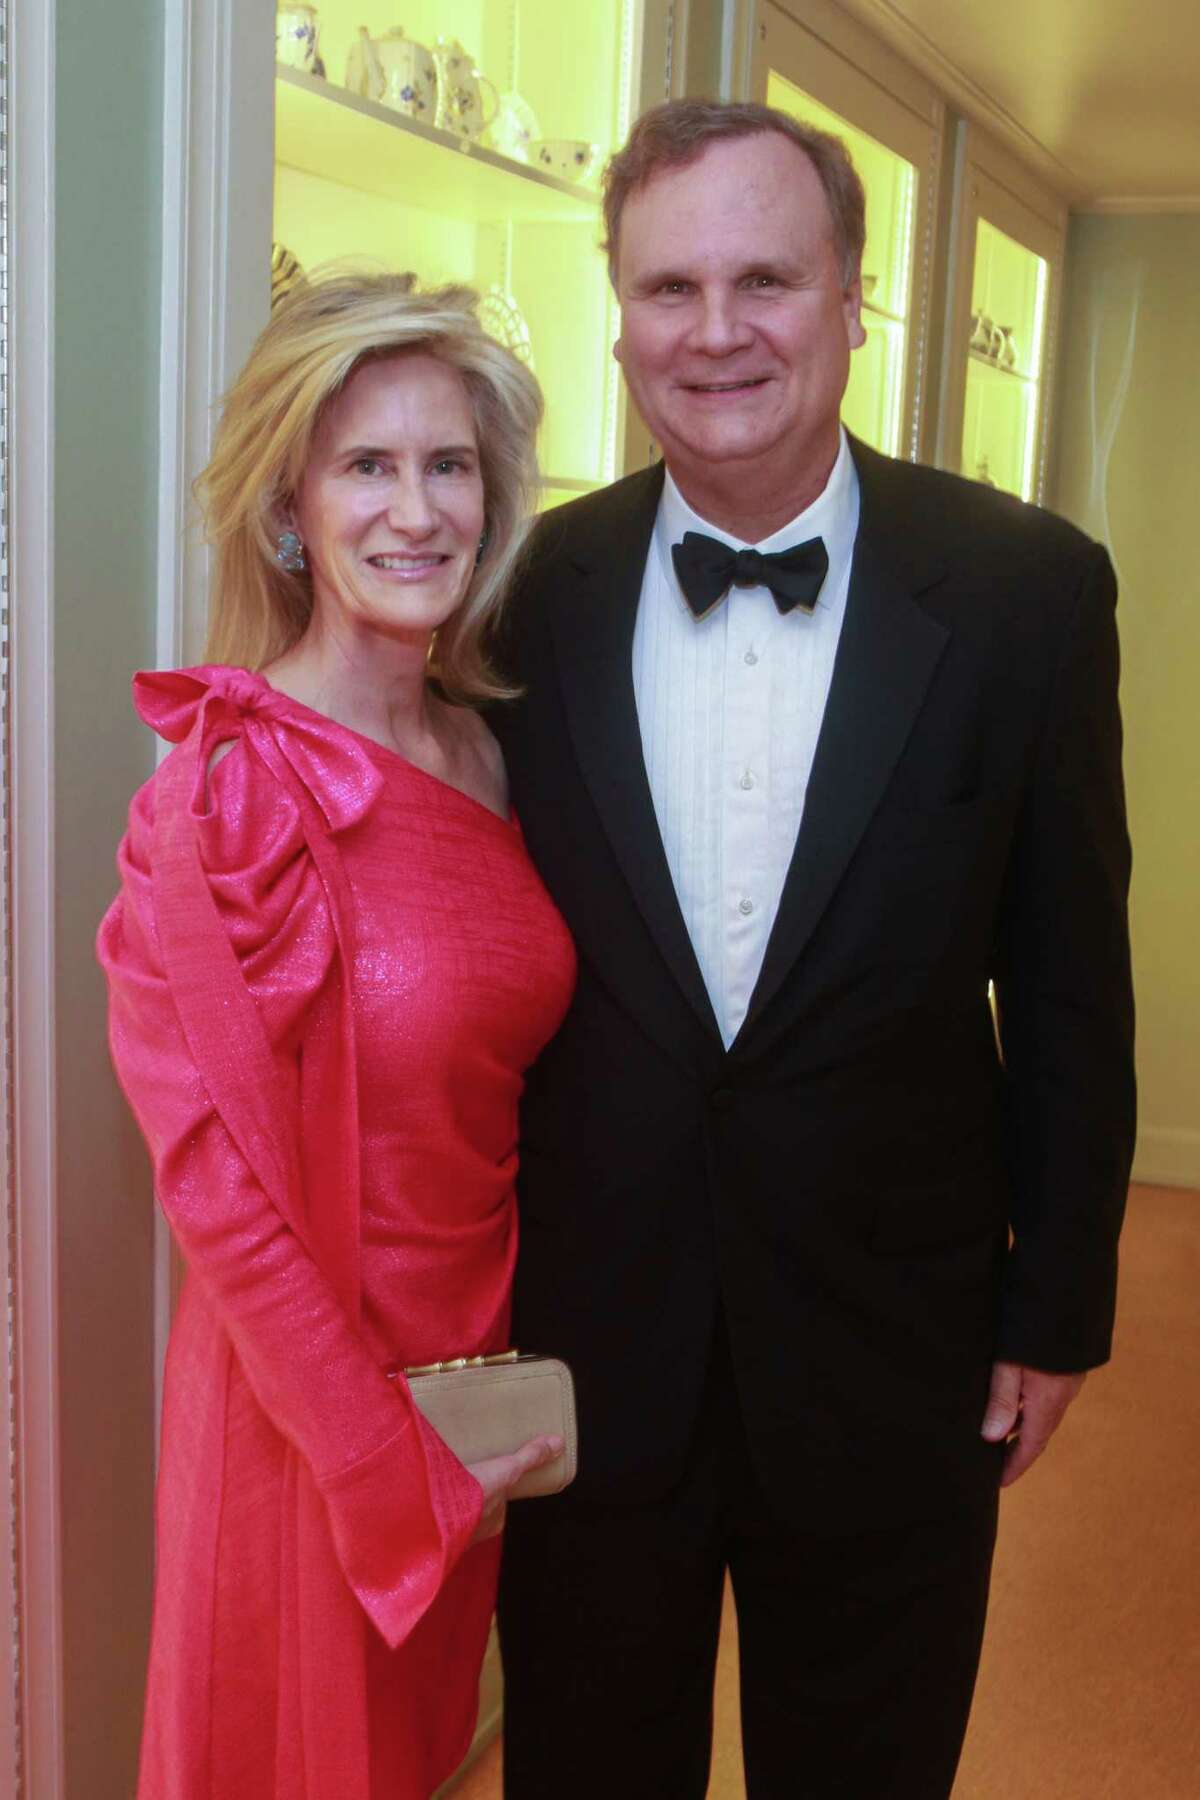 Meg and Nelson Murray at the Museum of Fine Arts, Houston's Rienzi Society Dinner in Houston on February 25, 2020.